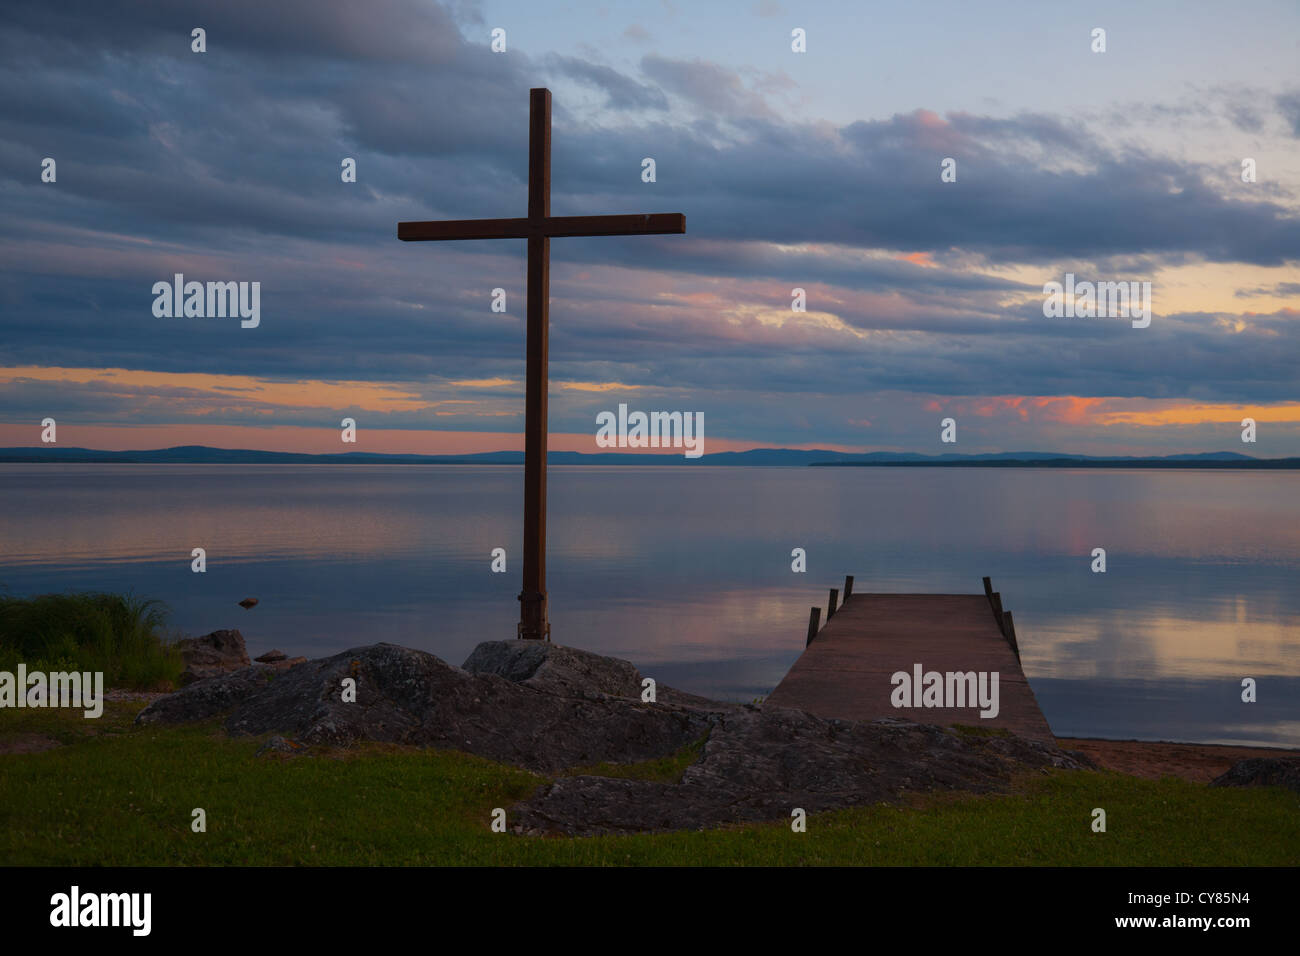 Cross by Rattvik's church, Dalarna, Sweden - Stock Image